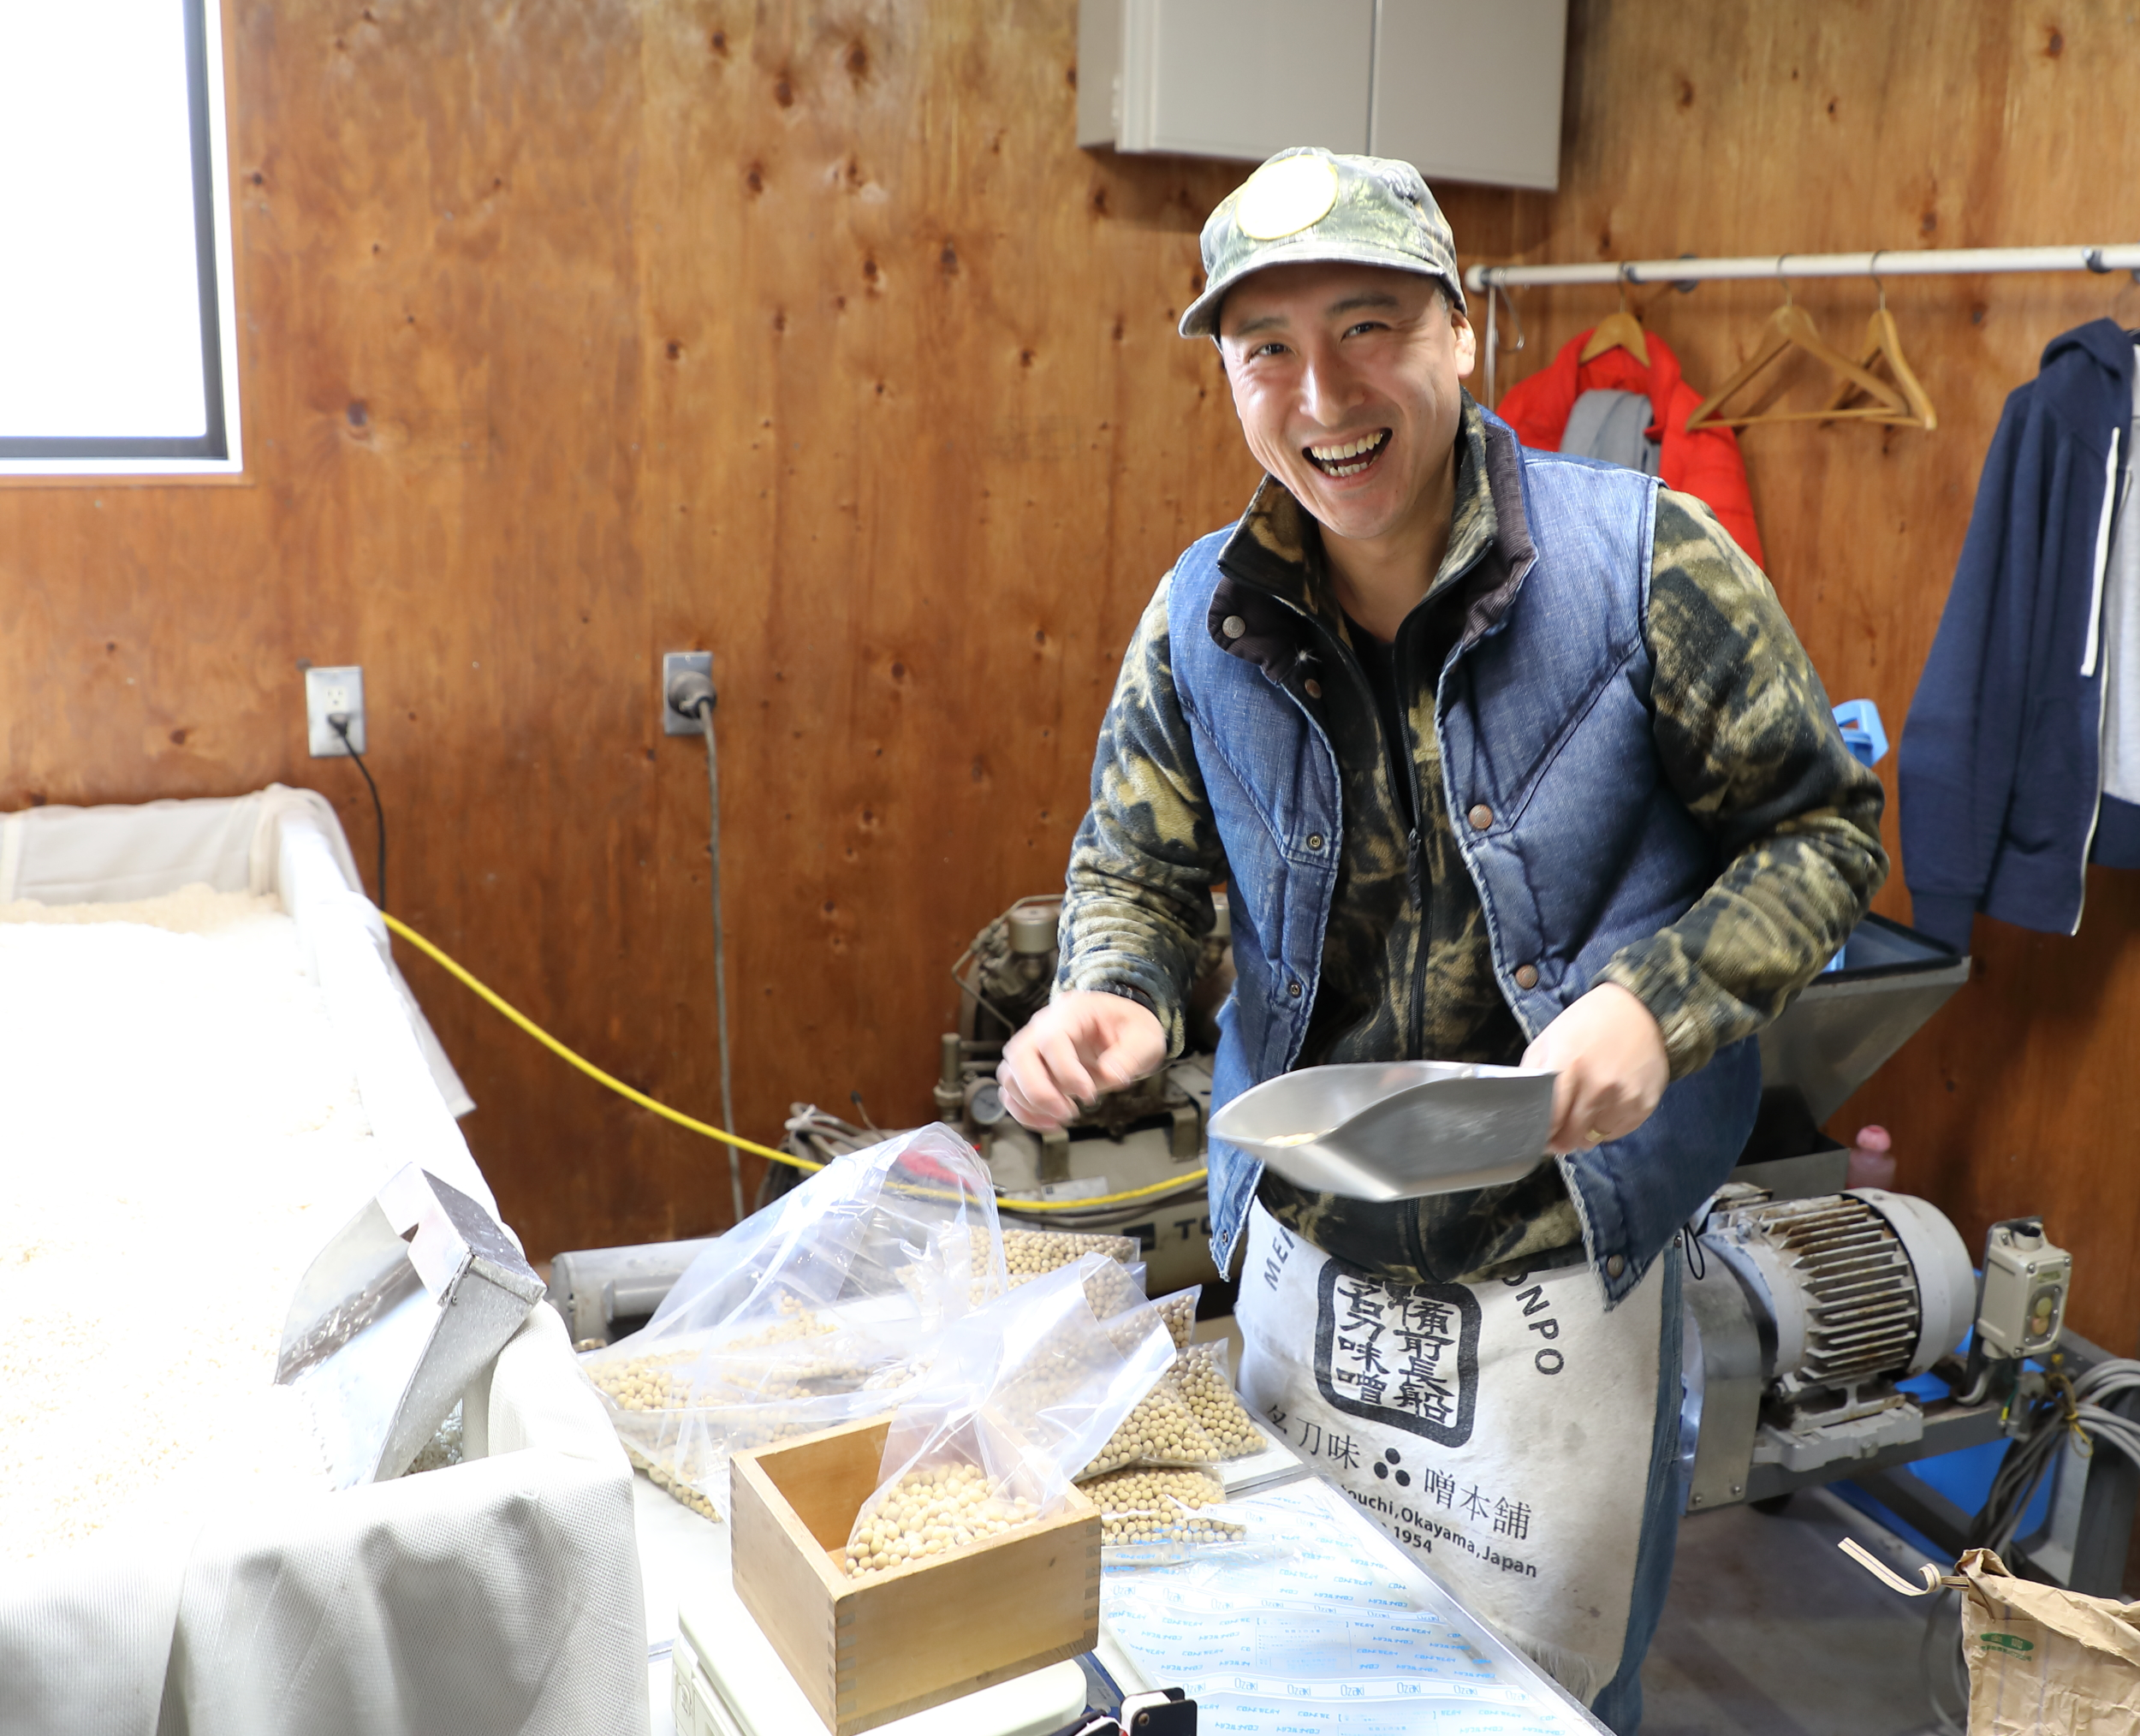 Ryuhei Meitou packing bags of dry soy beans to provide customers with all of the ingredients they need to make miso at home.